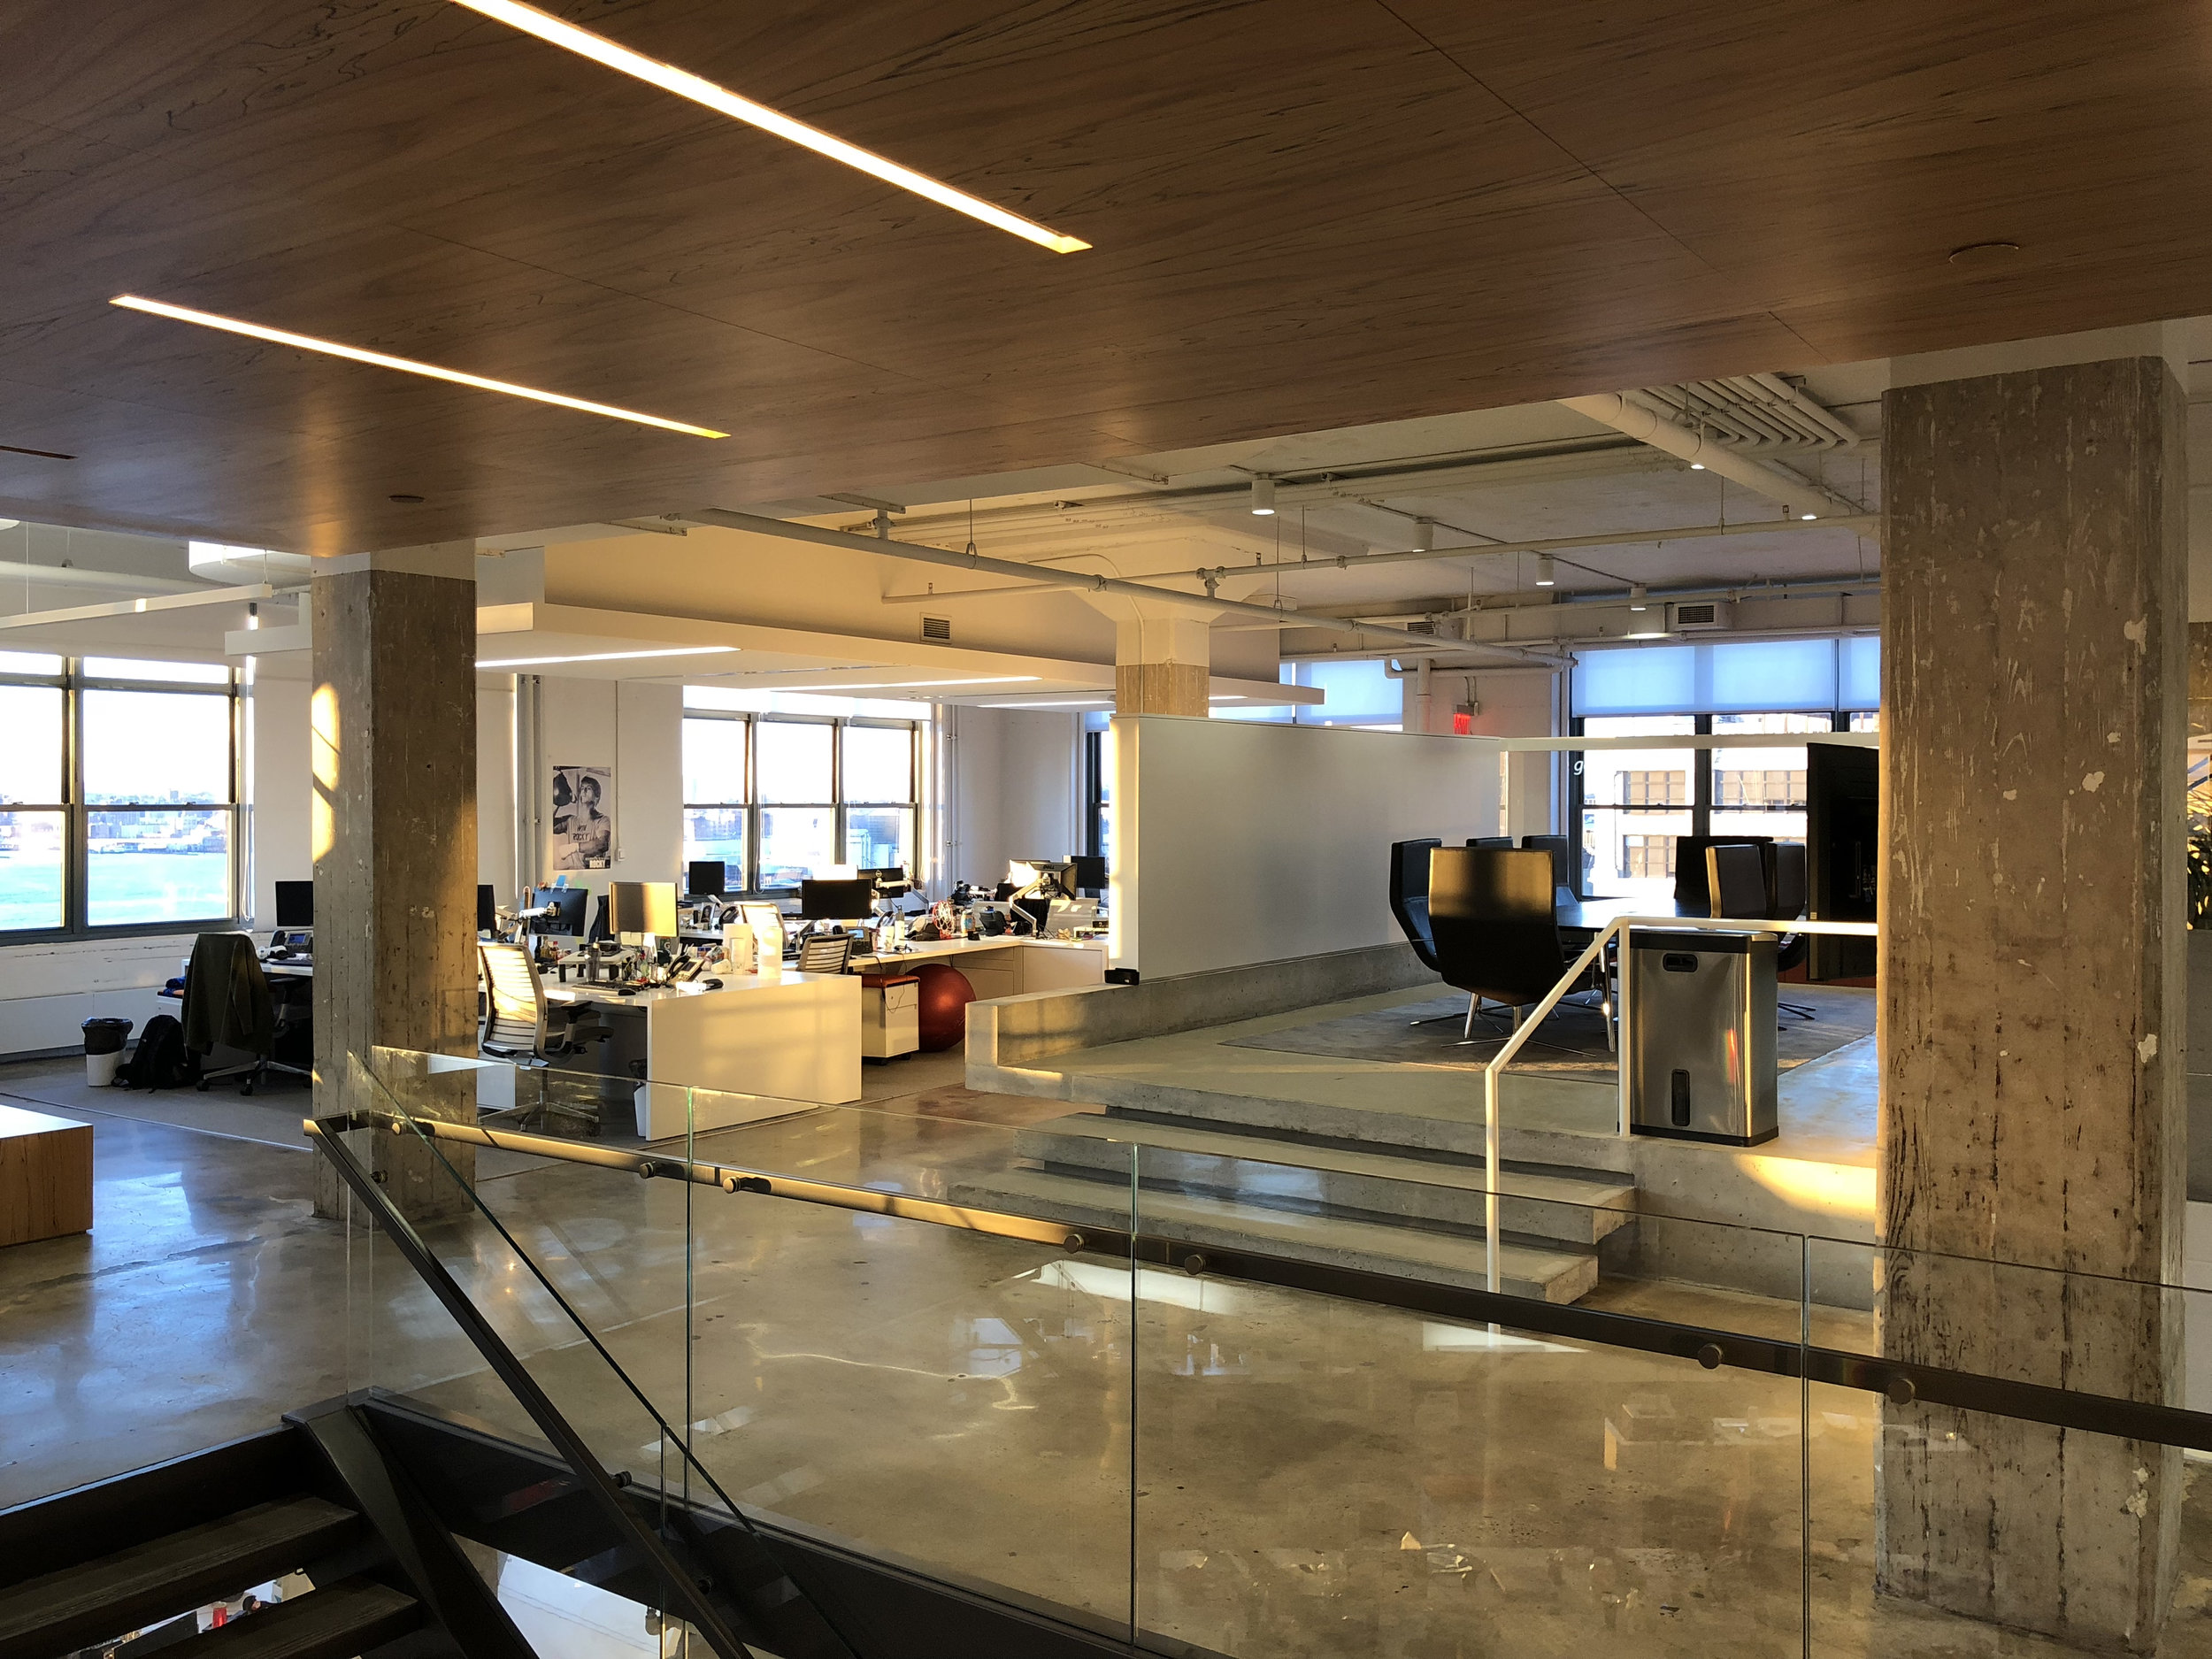 horizon media wavelength led retrofit office